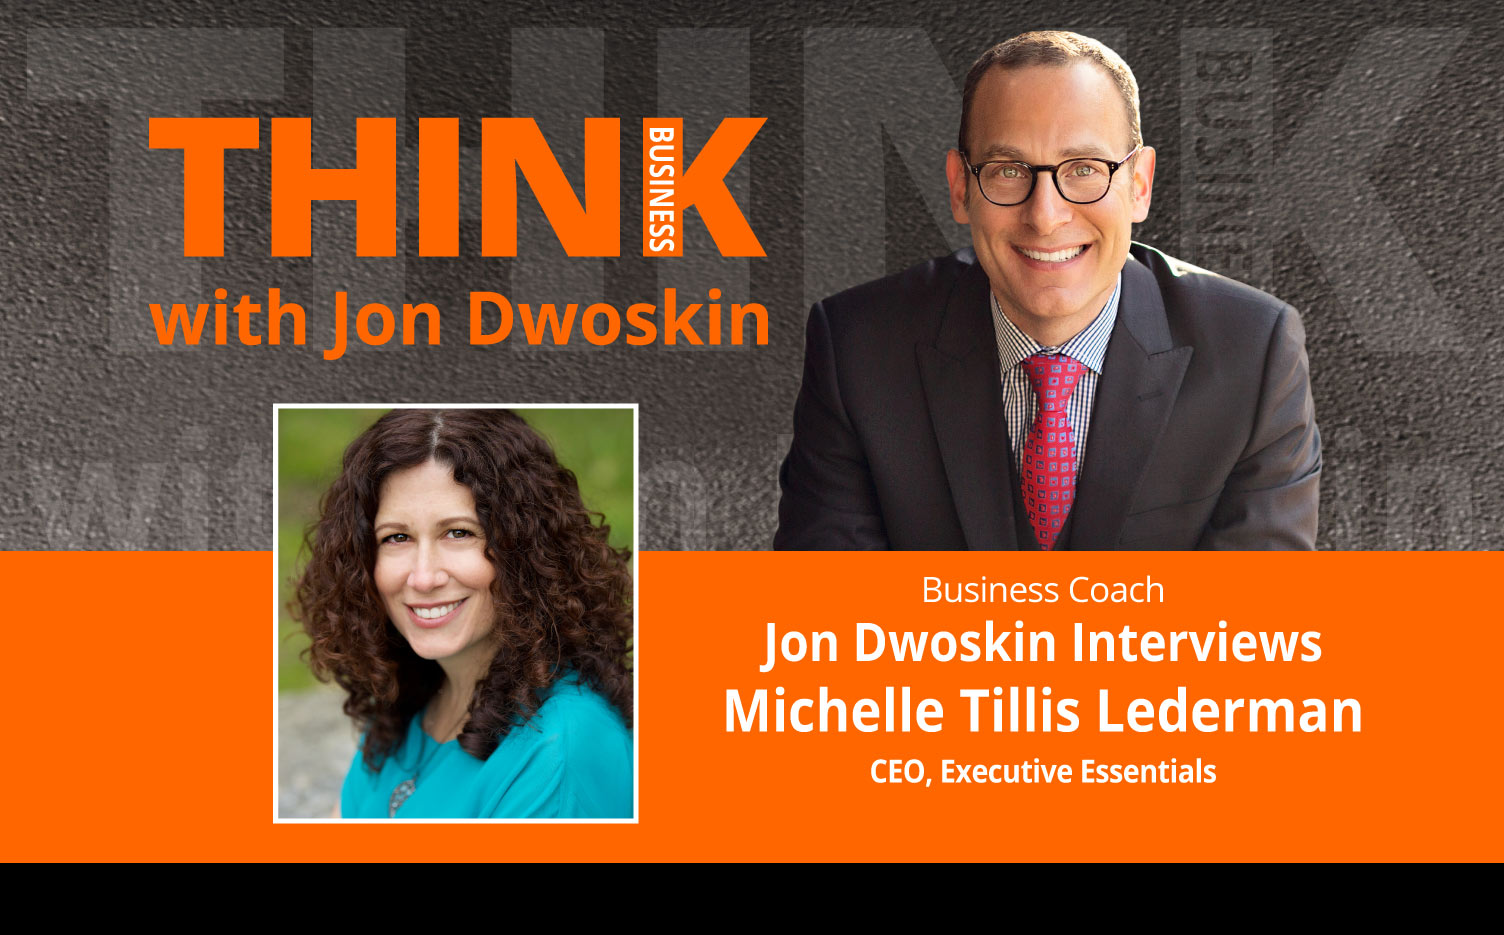 THINK Business Podcast: Jon Dwoskin Interviews Michelle Tillis Lederman, CEO, Executive Essentials